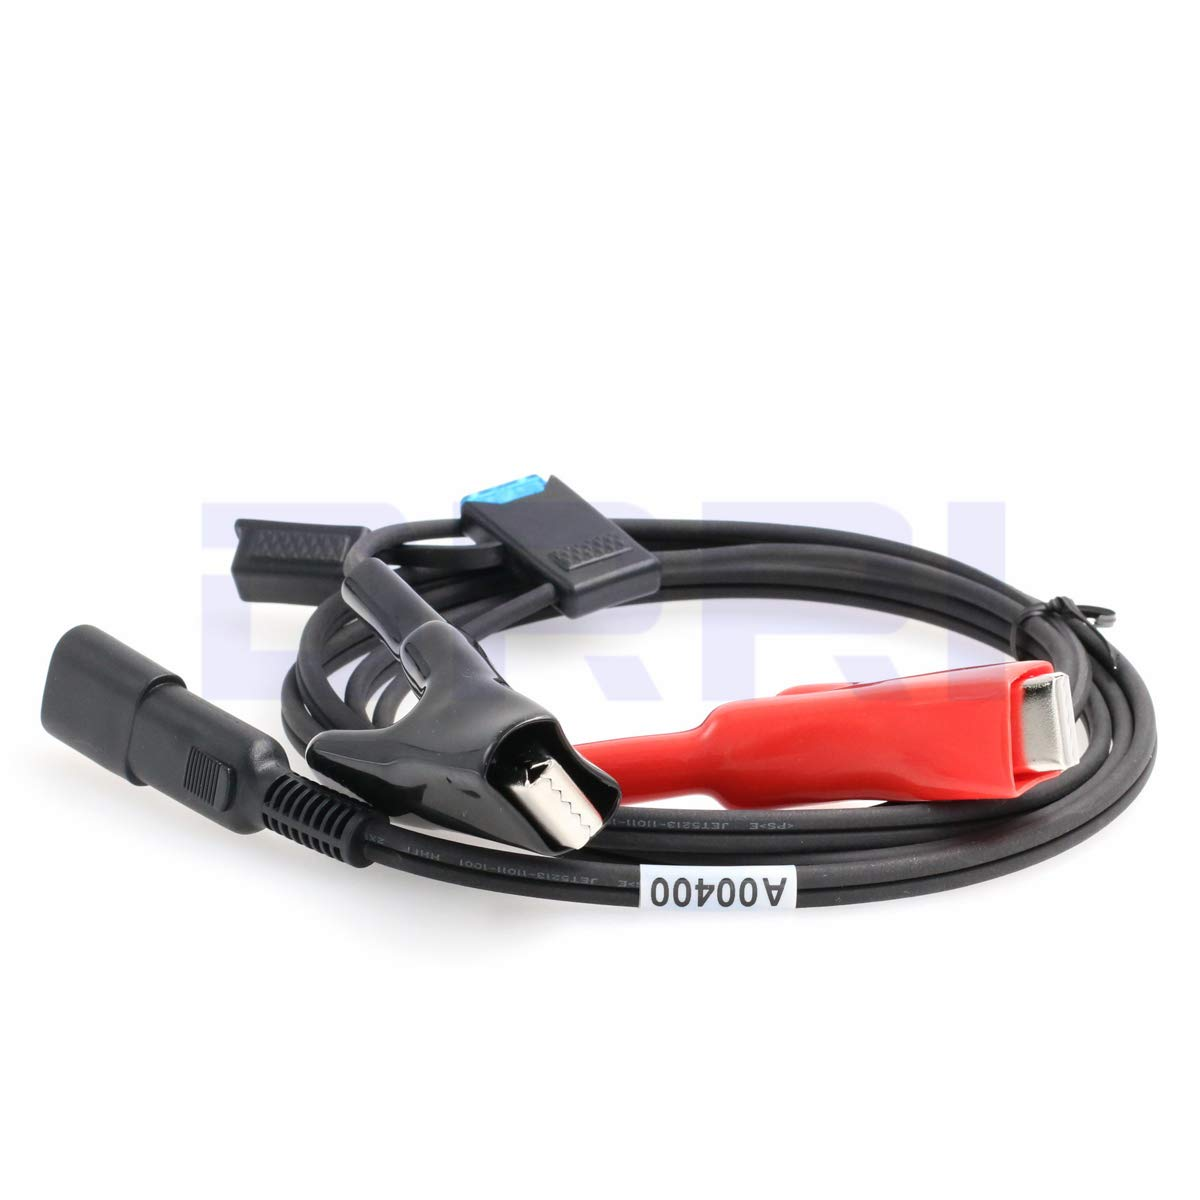 DRRI GPS External Power Cable A00400 with Alligator Clip for Leica//Topcon//Geomax A00400